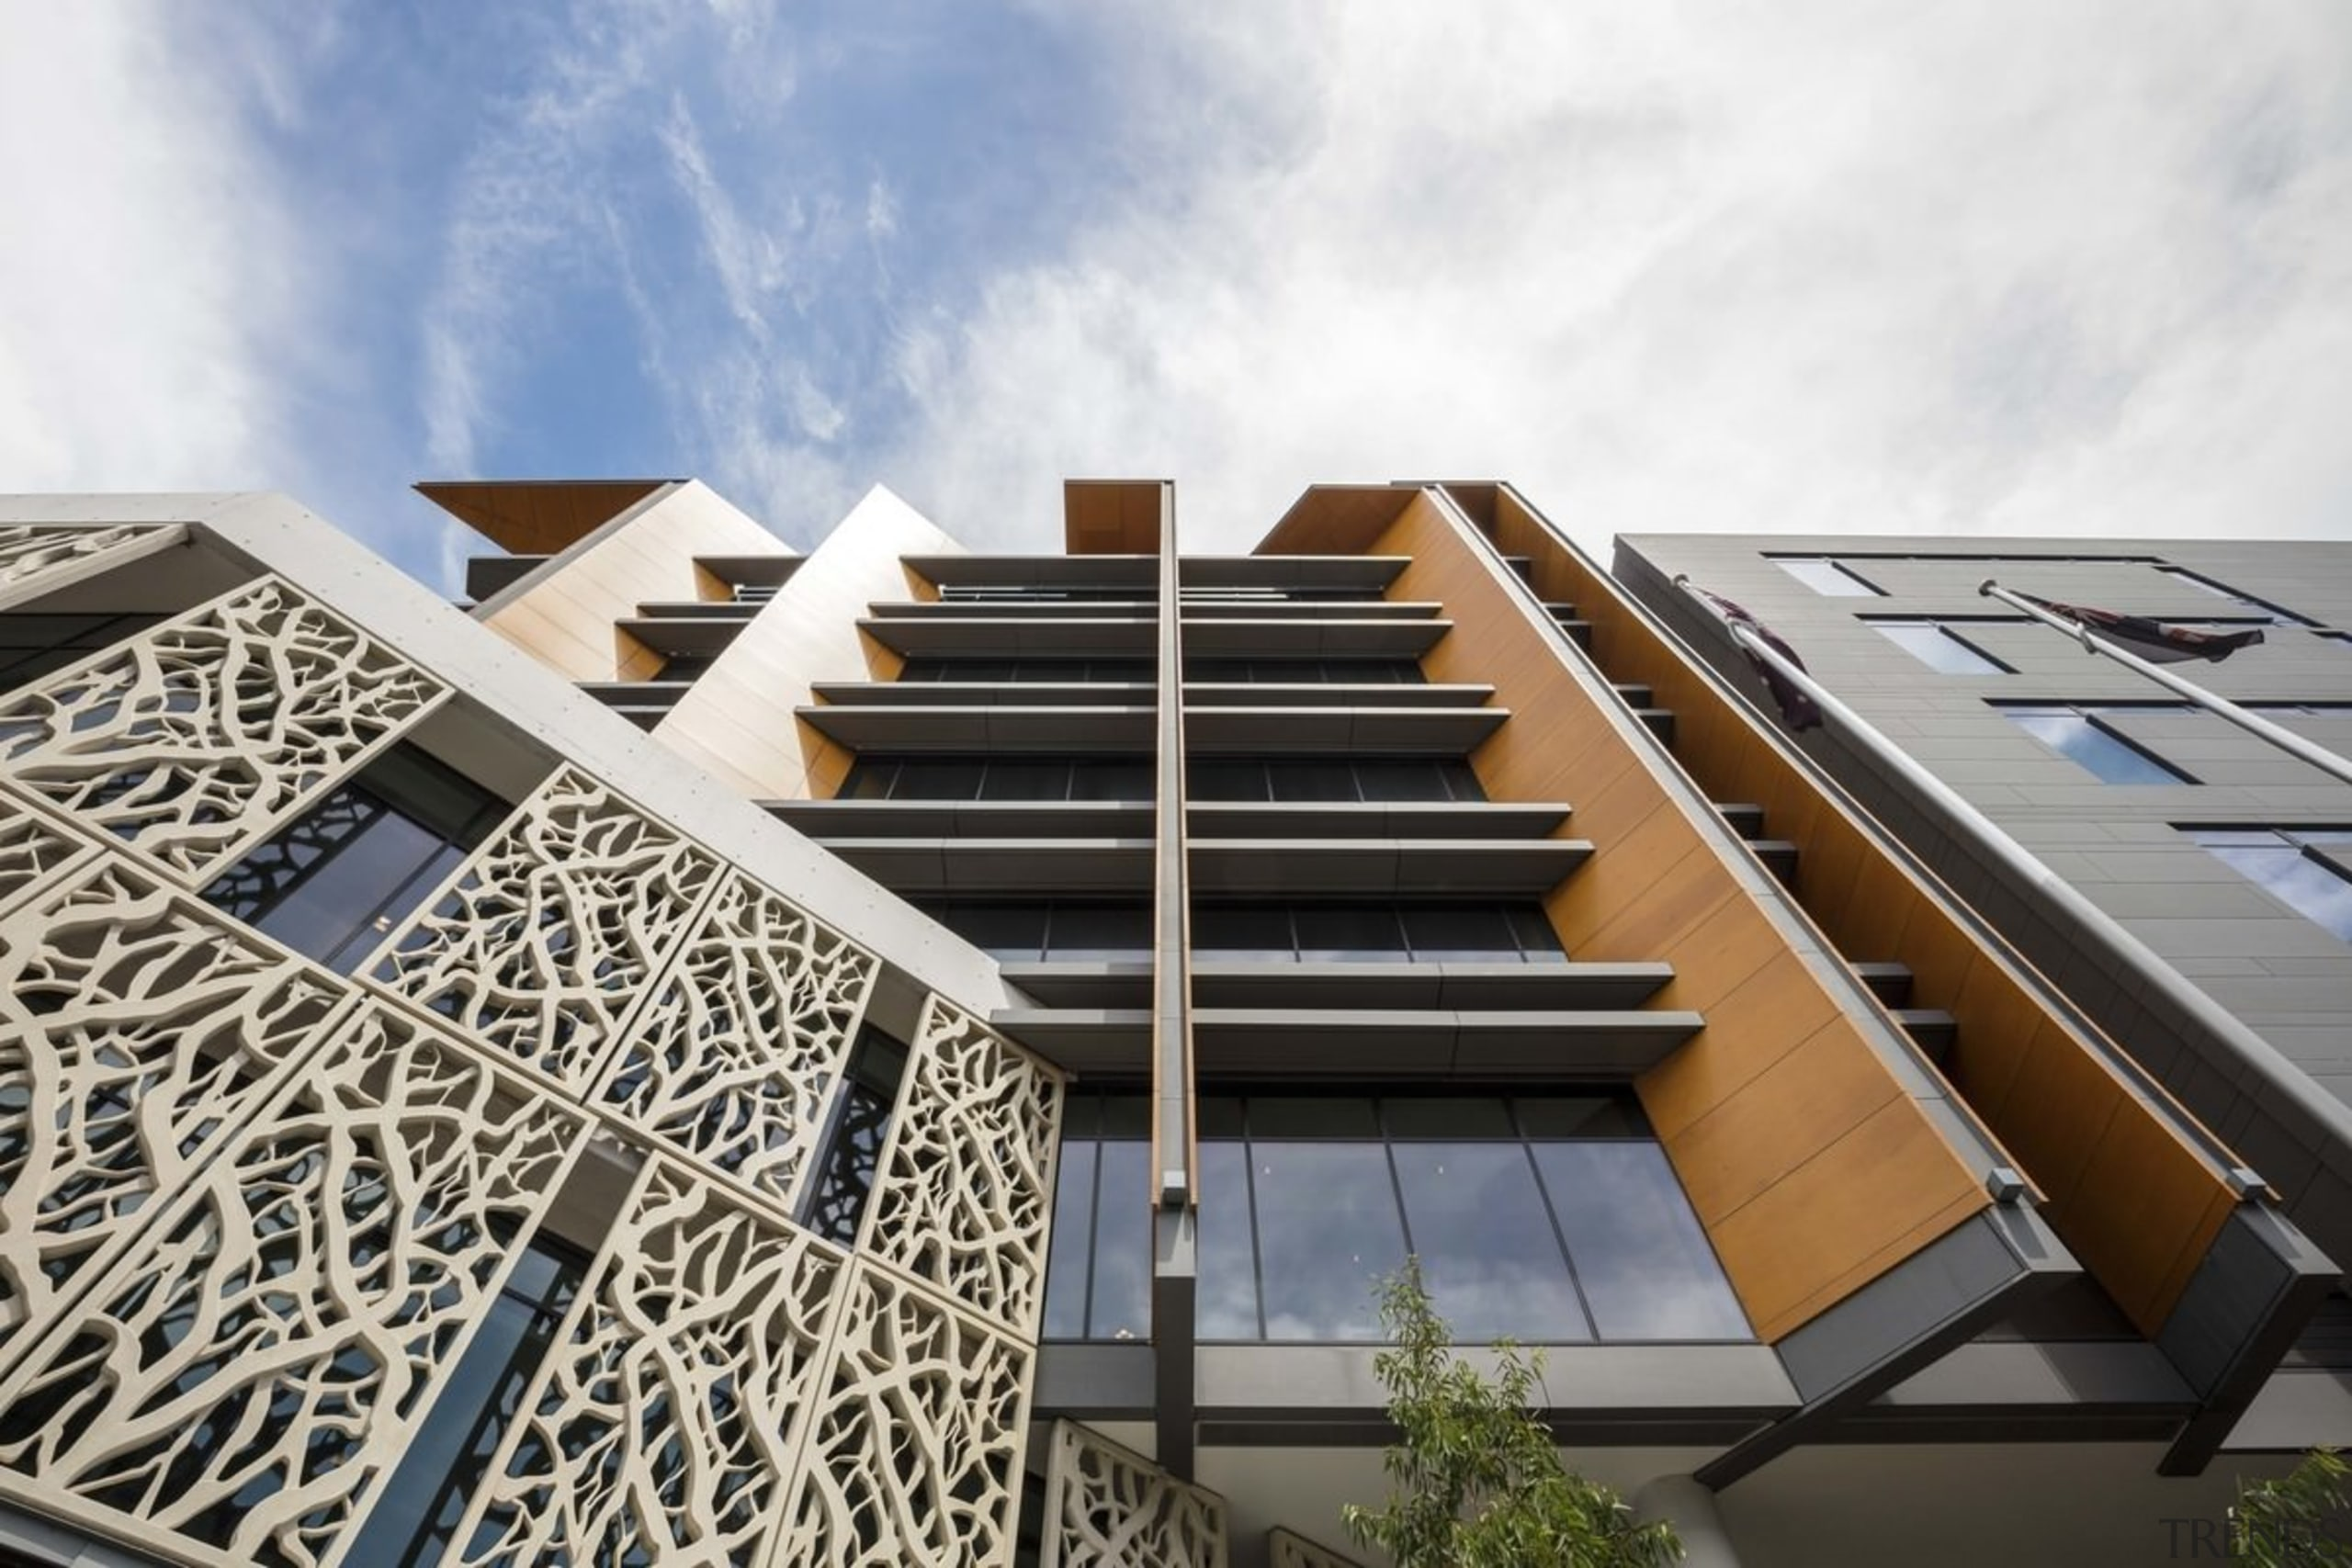 Newcastle Courthouse – Cox Architecture - Newcastle Courthouse apartment, architecture, building, commercial building, condominium, corporate headquarters, daylighting, facade, mixed use, residential area, sky, white, gray